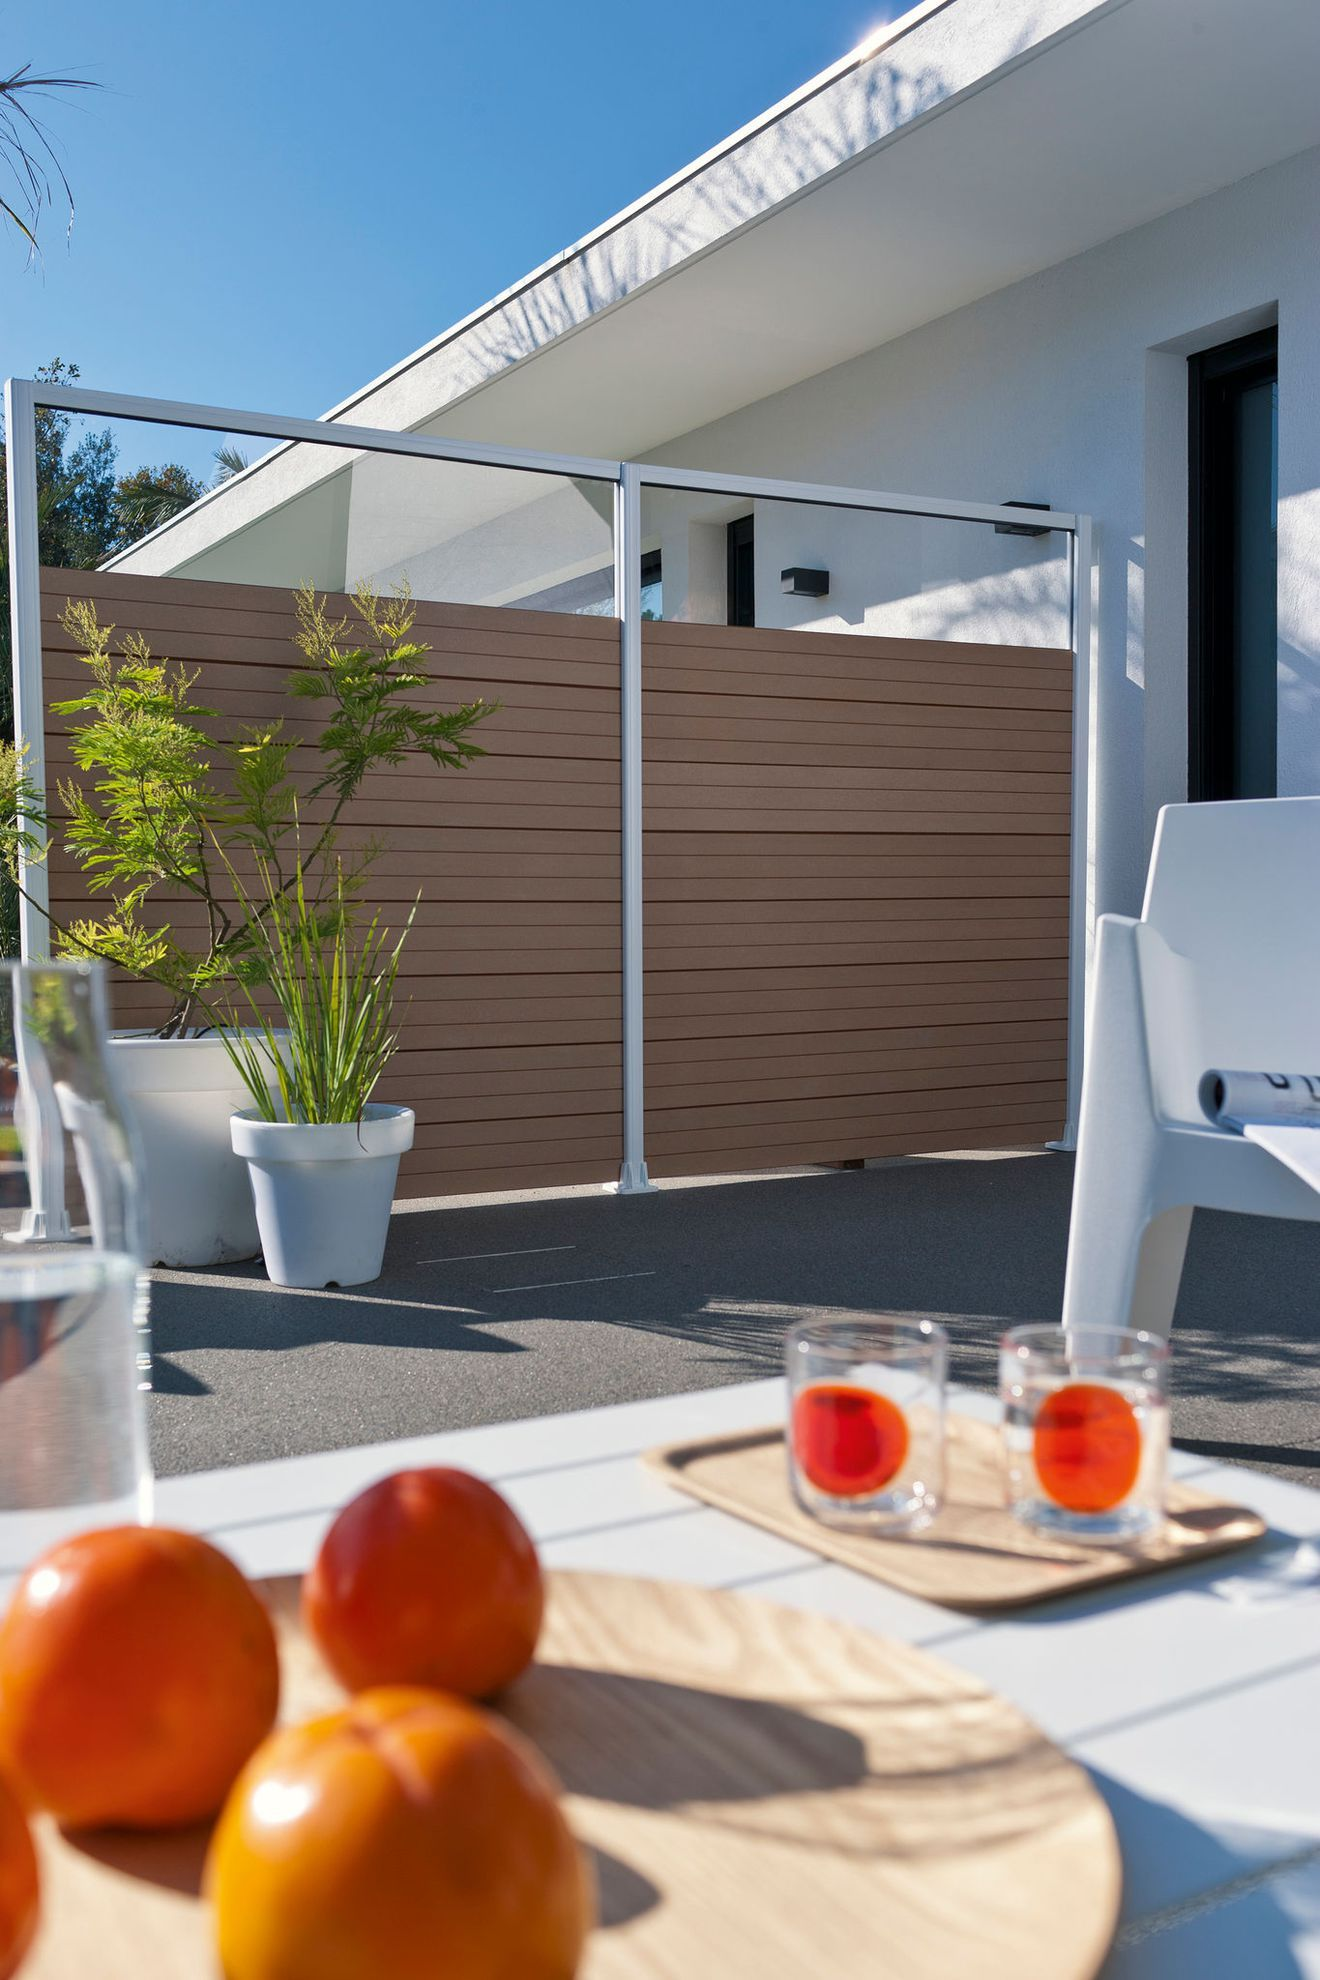 Composite fence high quality for backyard fence panels using wood composite fence high quality for backyard fence panels using wood plastic in dubai baanklon Image collections